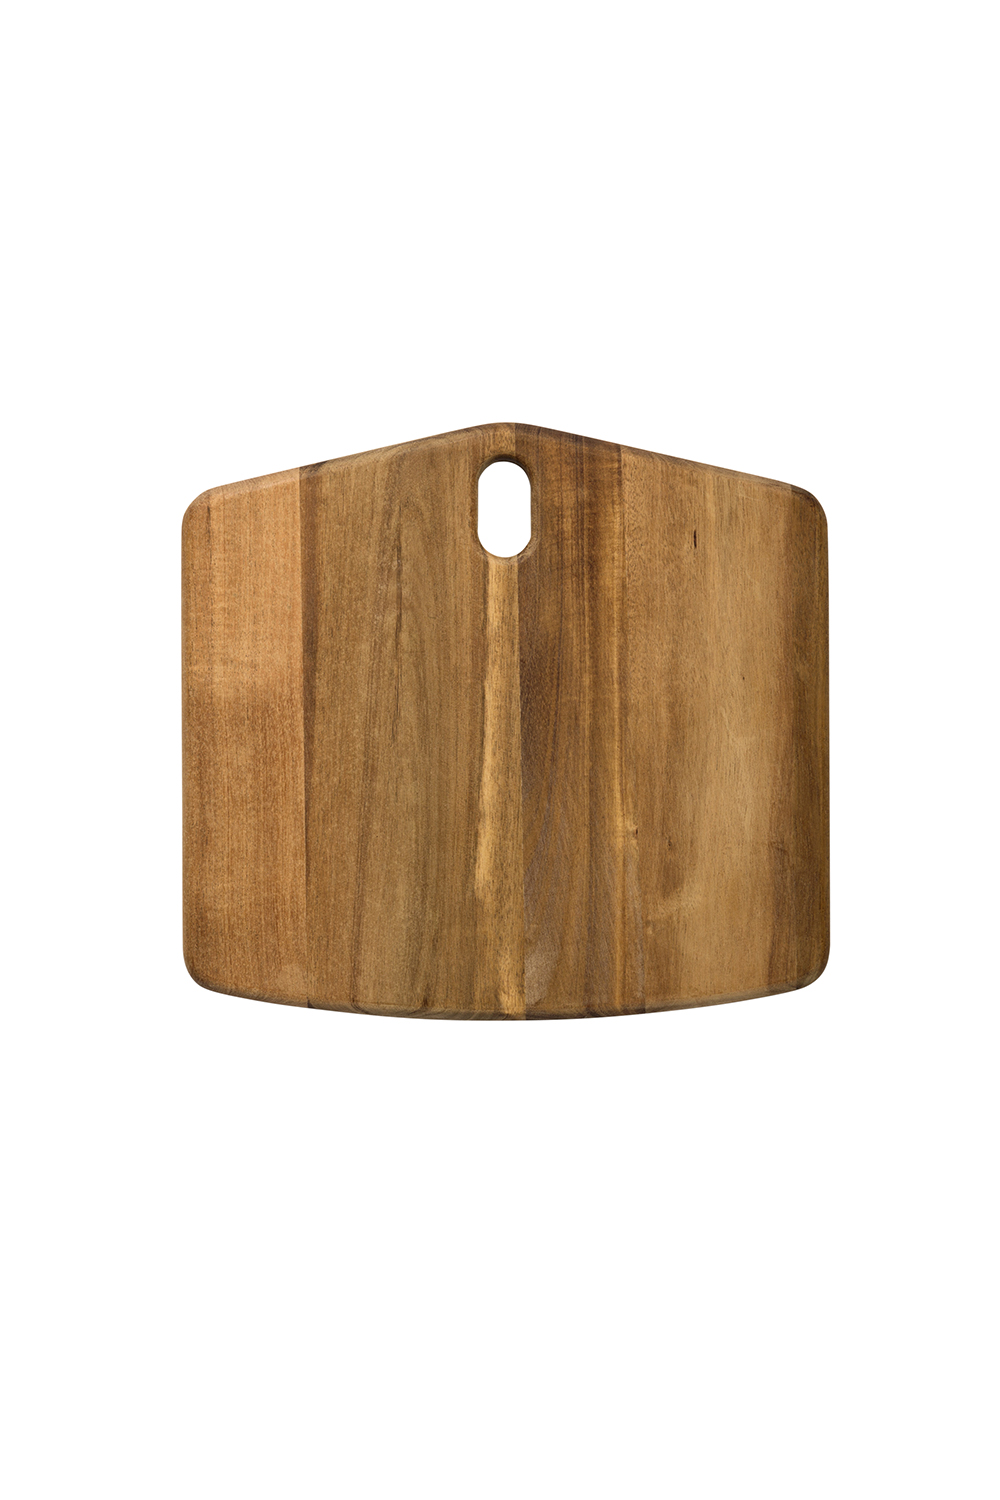 SostreneGrene_SpringCollection2017_Cutting board 2 (acacia wood)